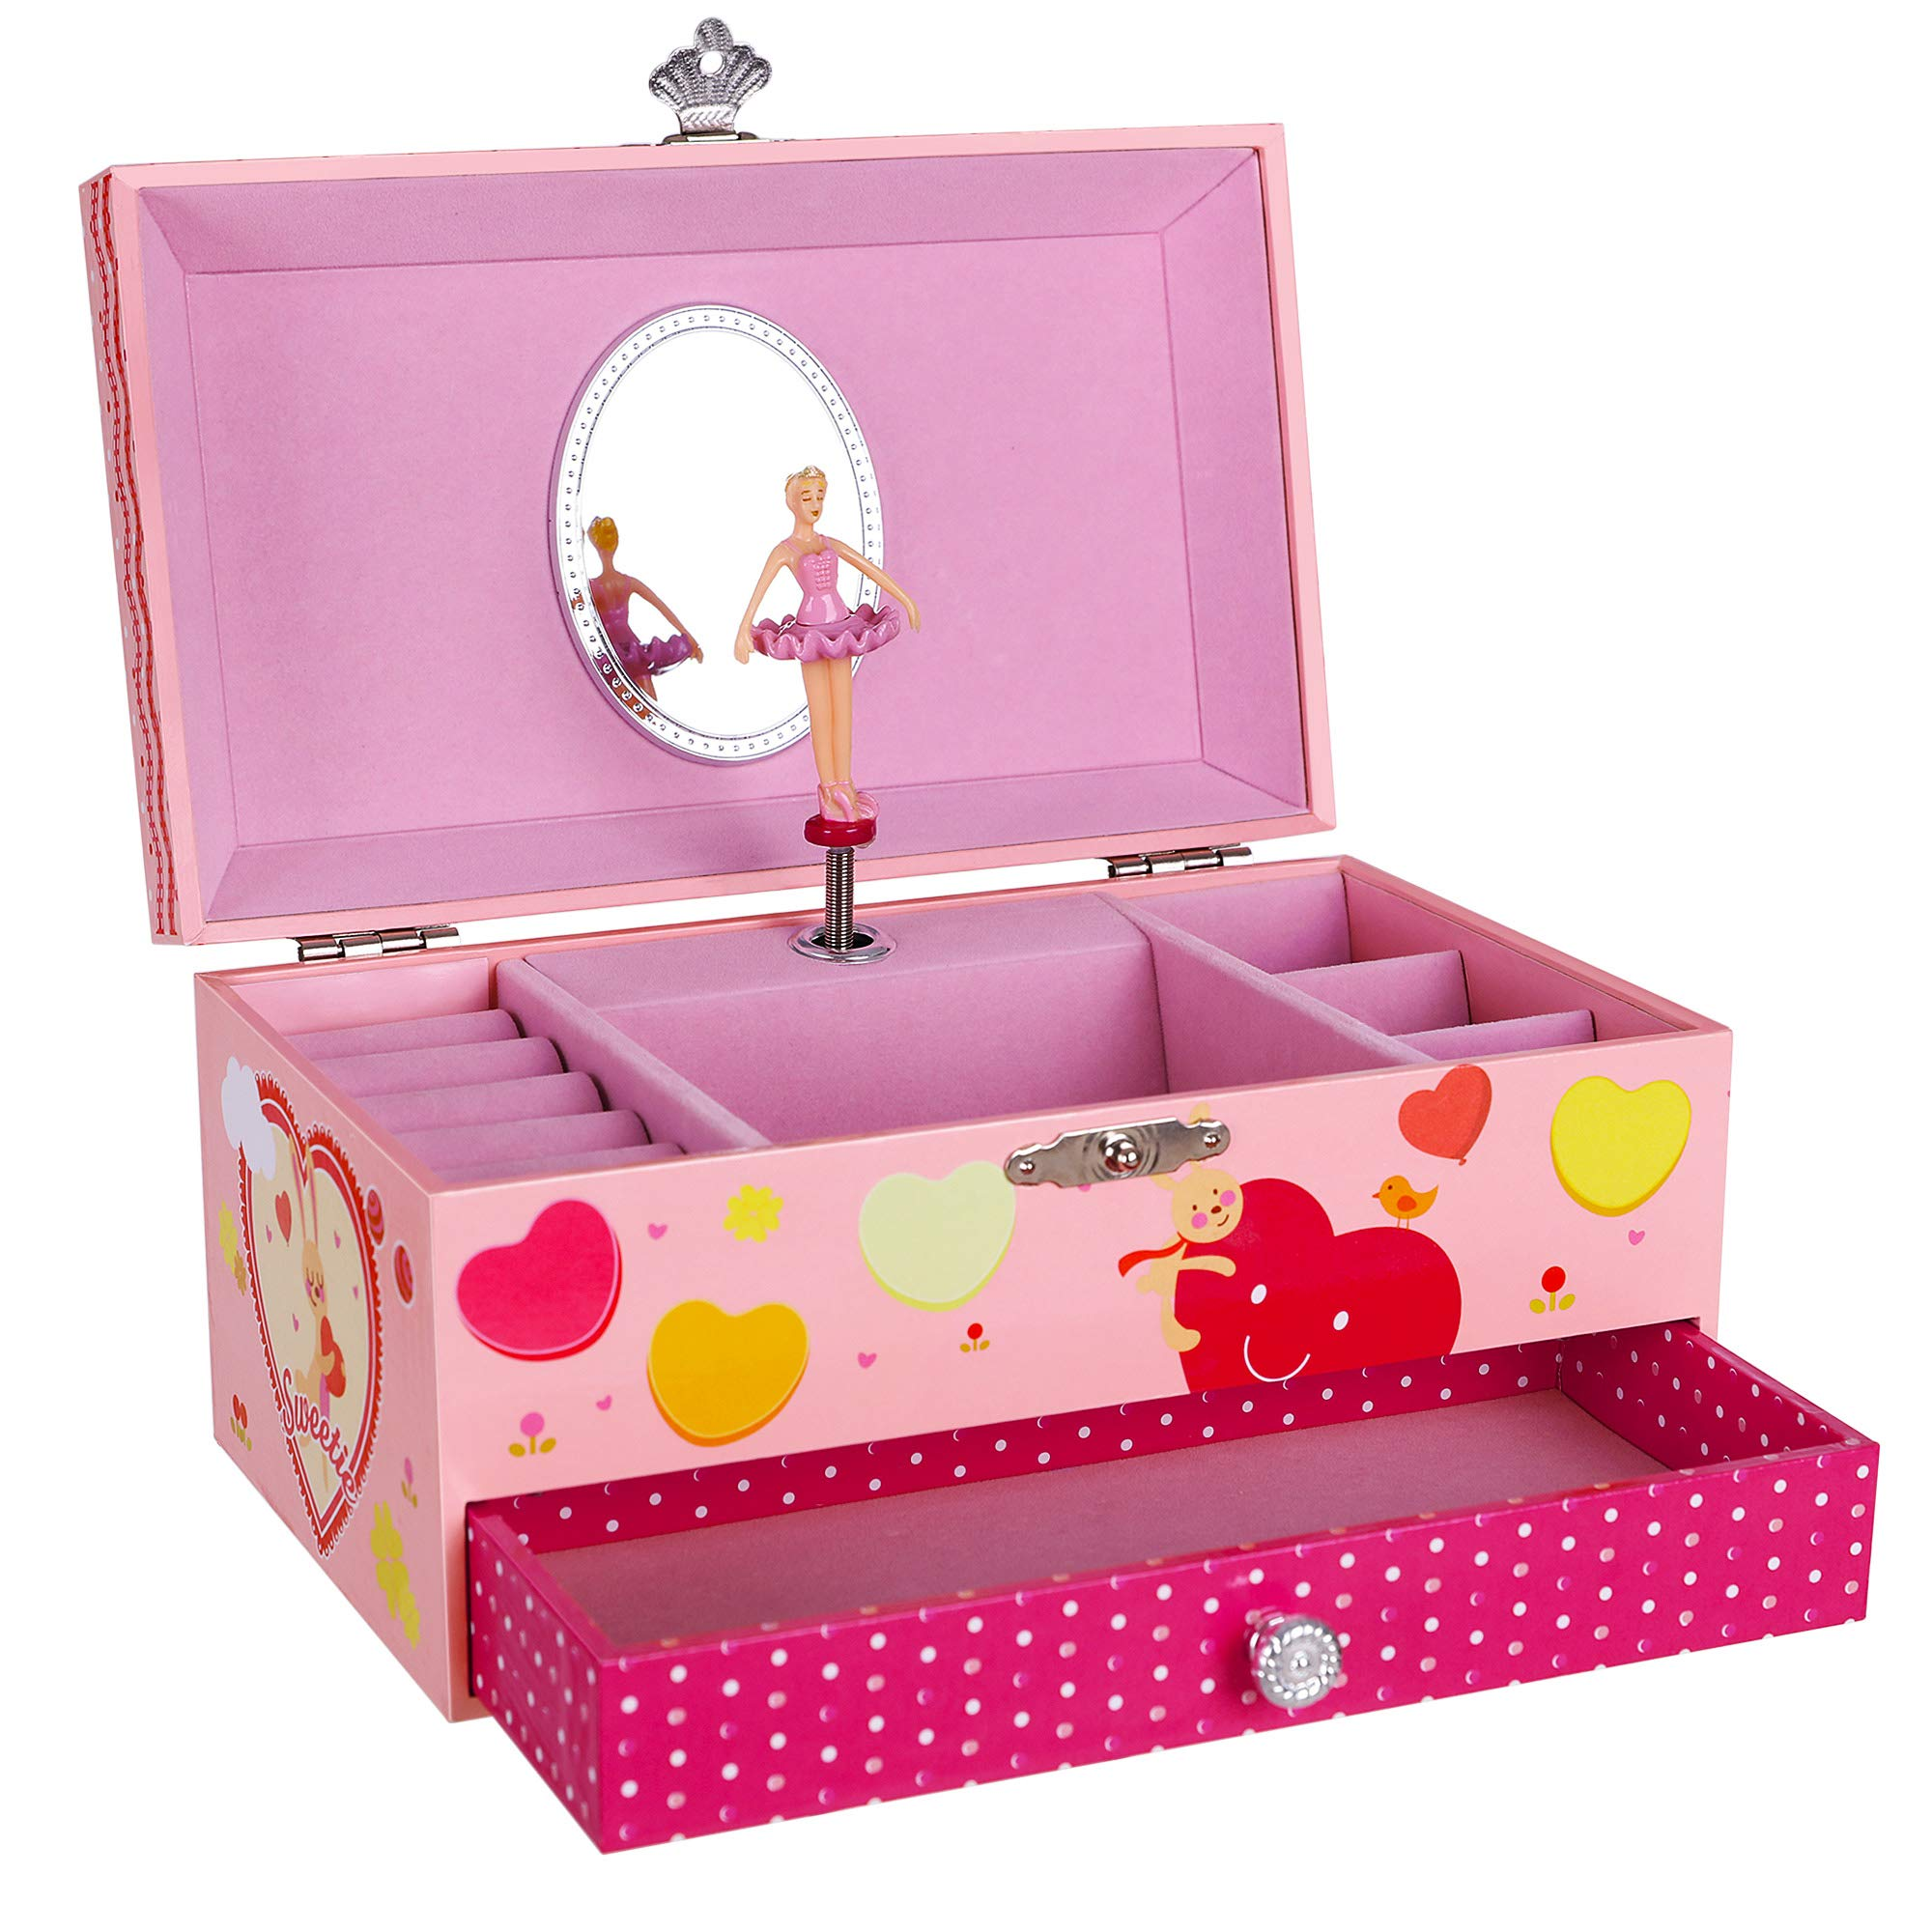 SONGMICS Ballerina Music Jewelry Box for Little Girls, Swan Lake Tune Pink UJMC002 by SONGMICS